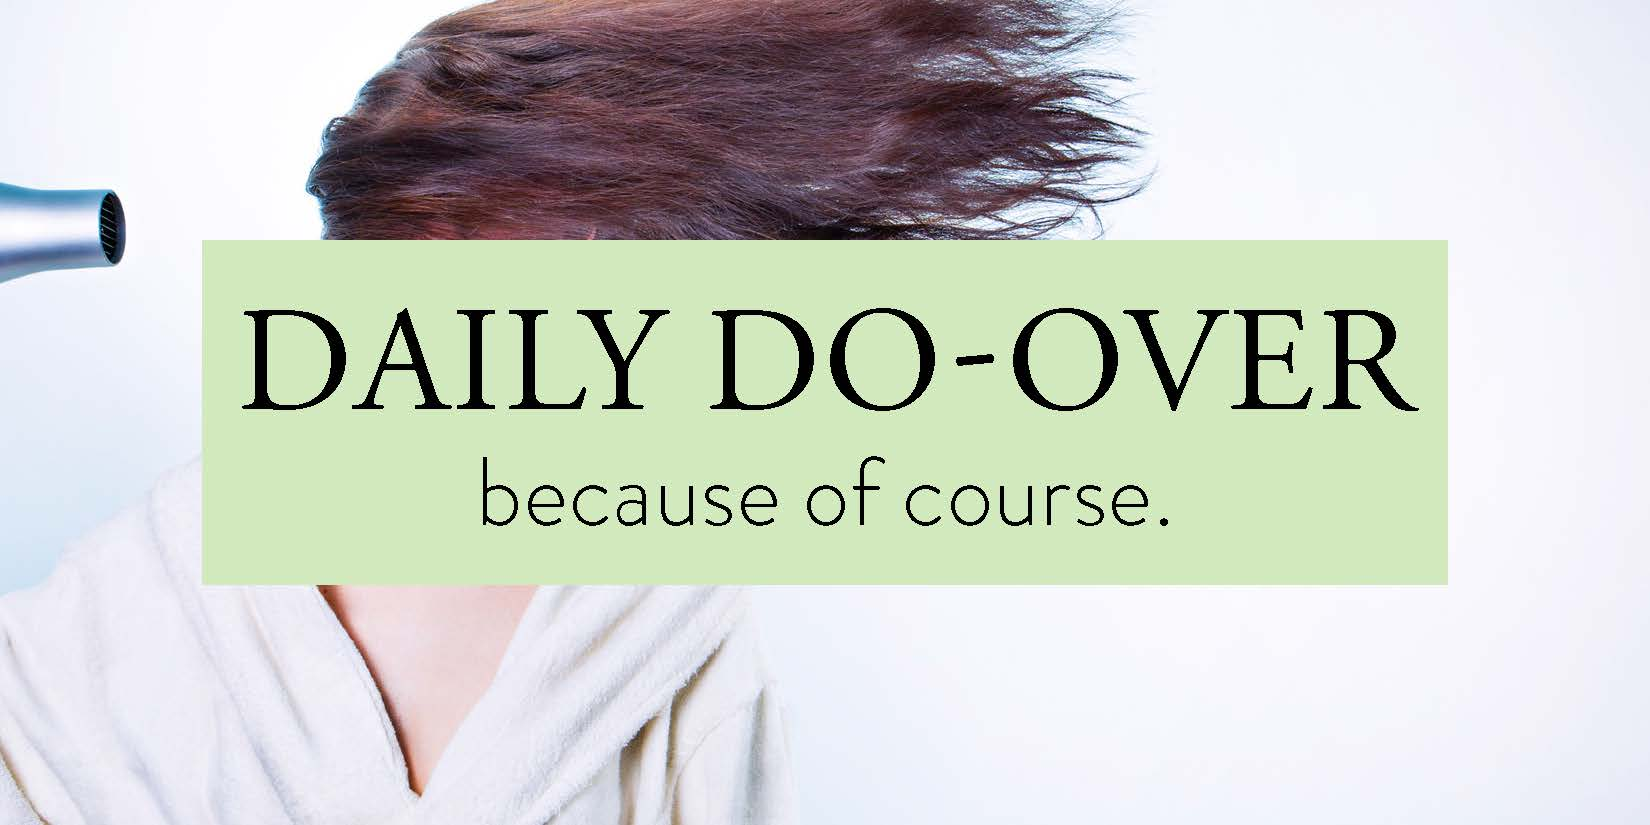 Daily Do-Over